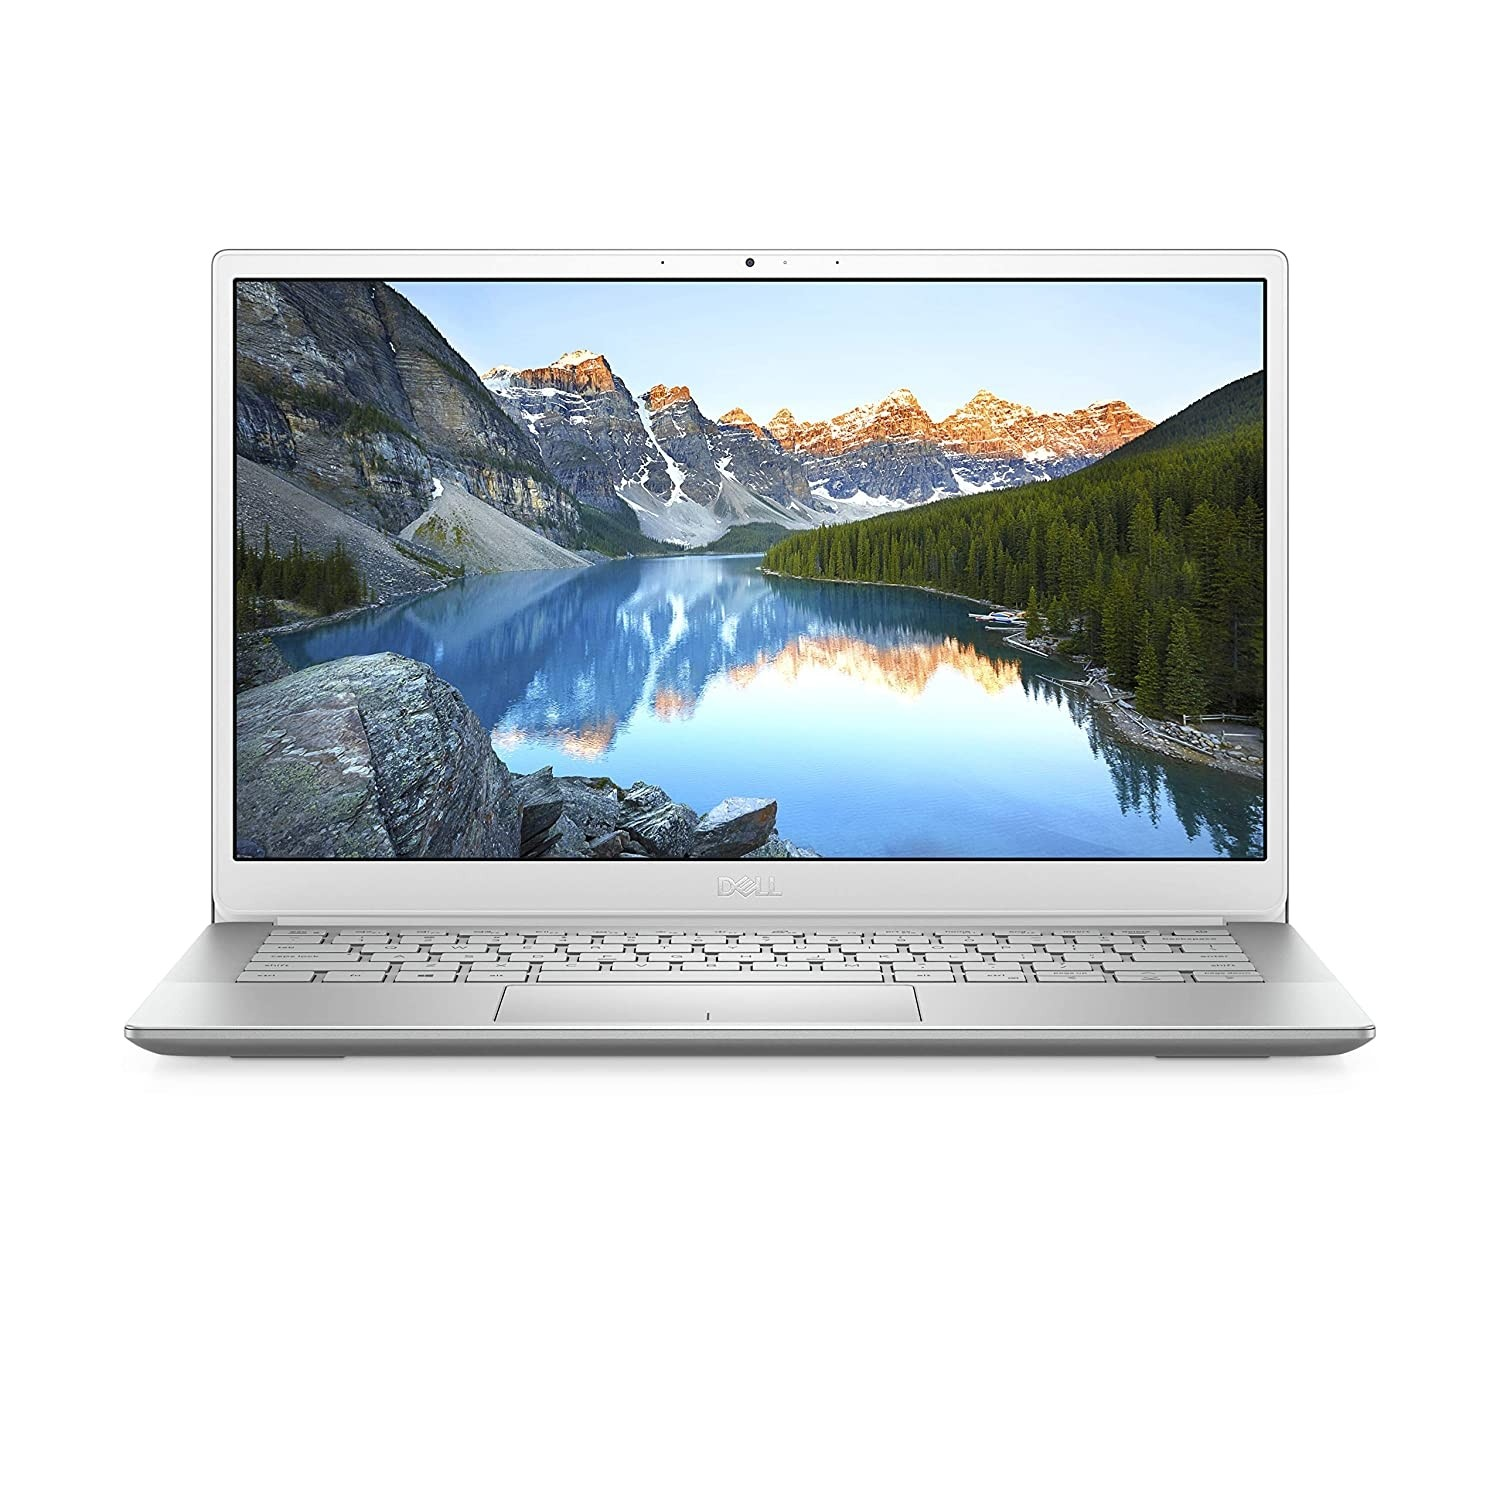 Refurbished laptops & desktops - DELL INSPIRON 5390 13.3-INCH FHD LAPTOP (8TH GEN CORE I5-8265U/8GB/512GB SSD/WINDOWS 10/INTEL HD GRAPHICS), SILVER